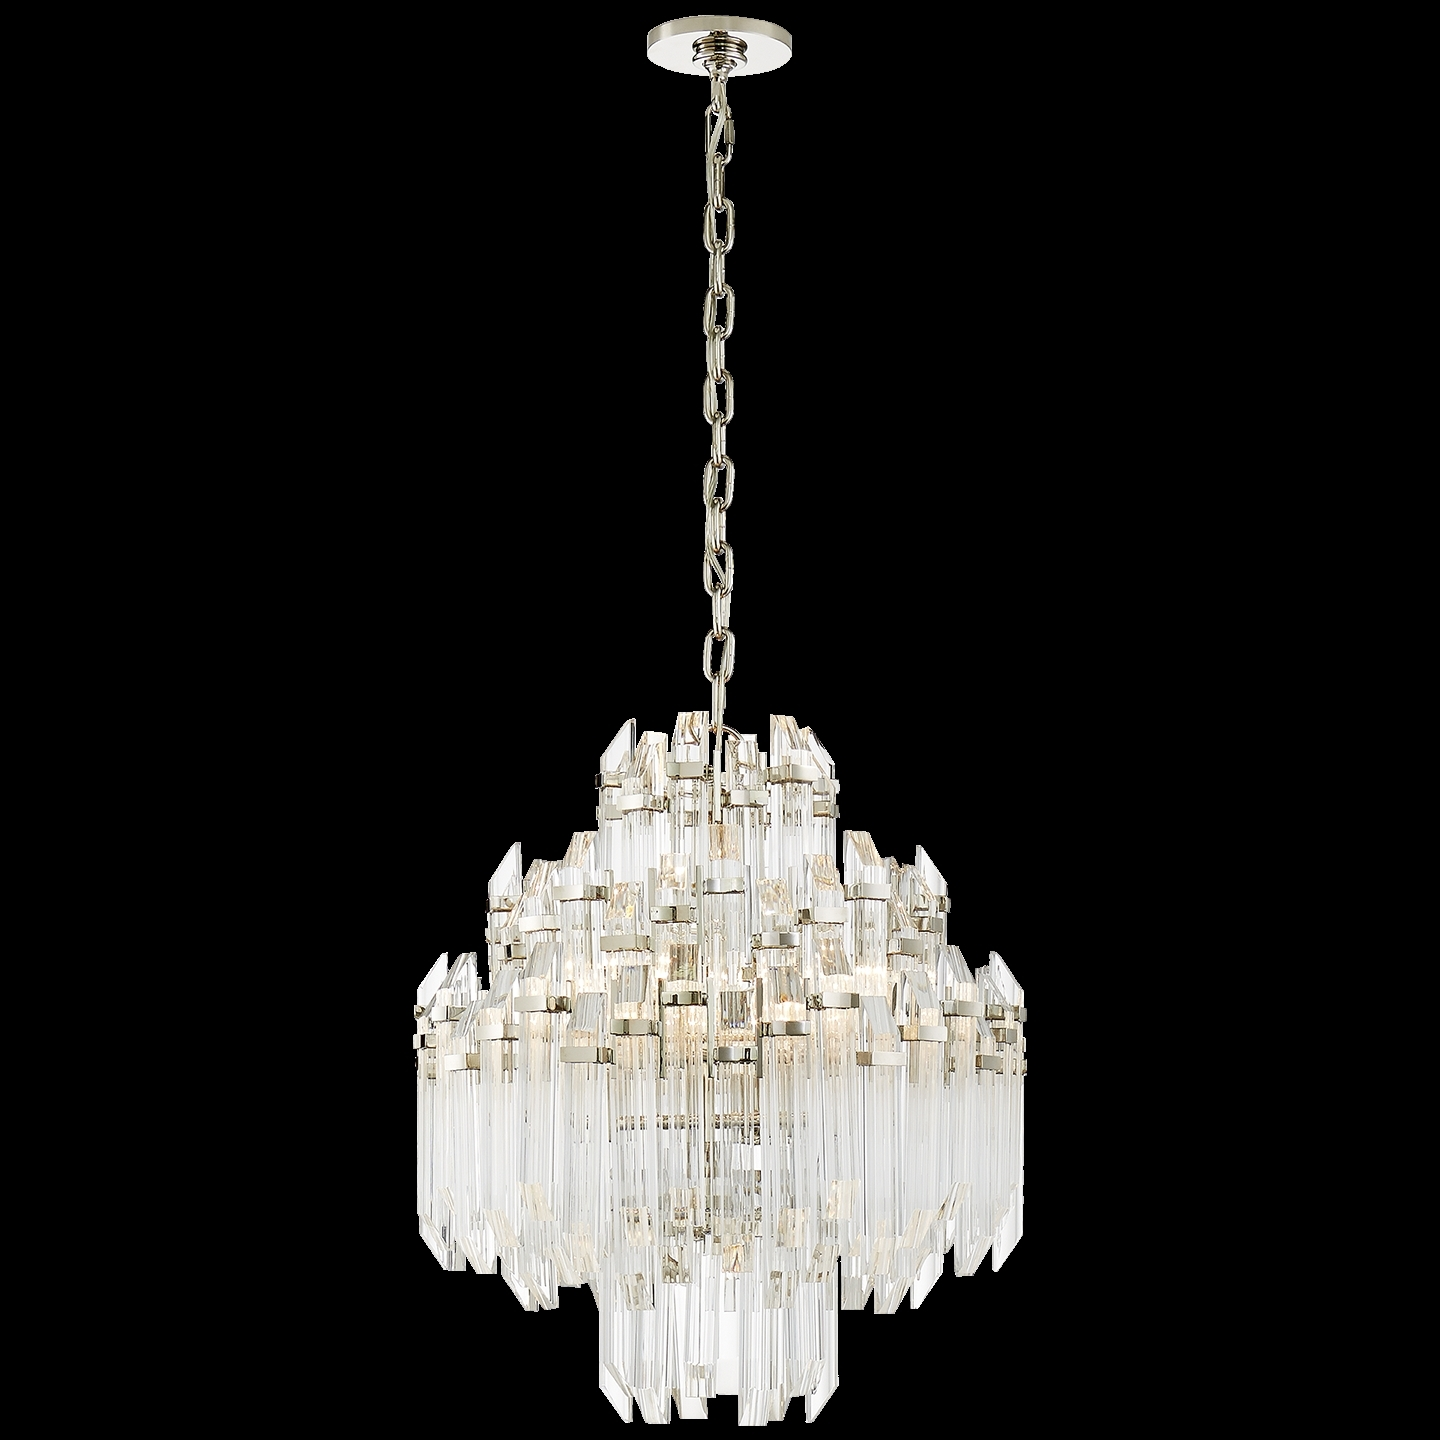 Accessories Trendy Chandeliers Also Chandelier Elegant For Trendy Chandeliers (Image 1 of 11)